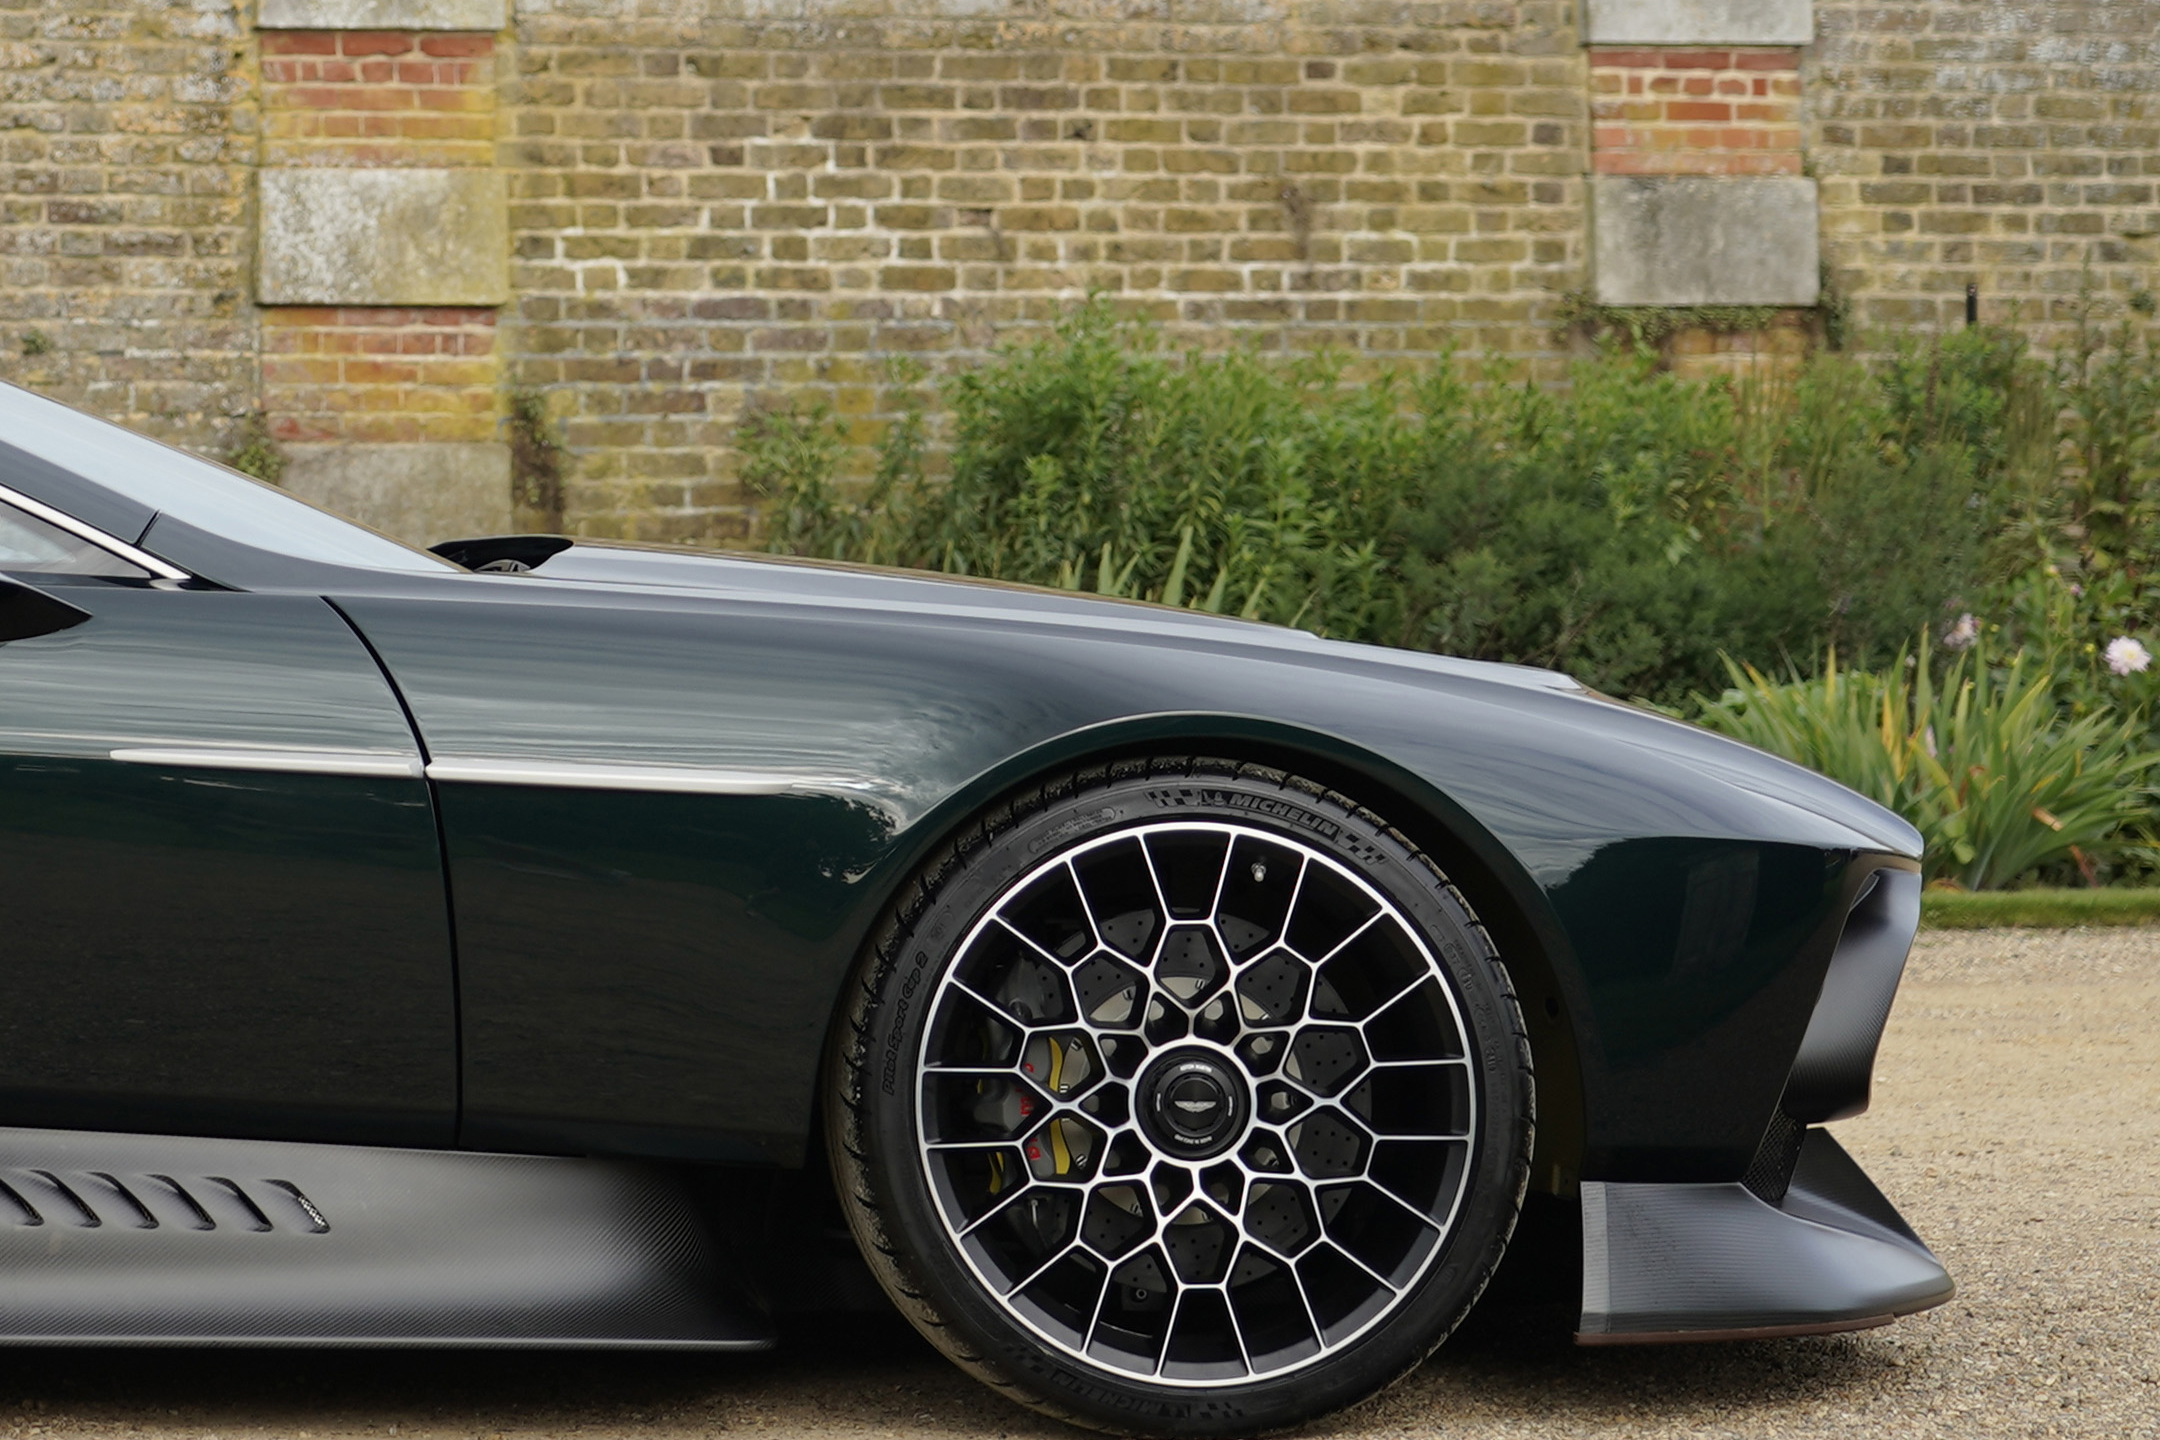 Aston Martin Victor by Q - 2020 - front wheel / jante avant